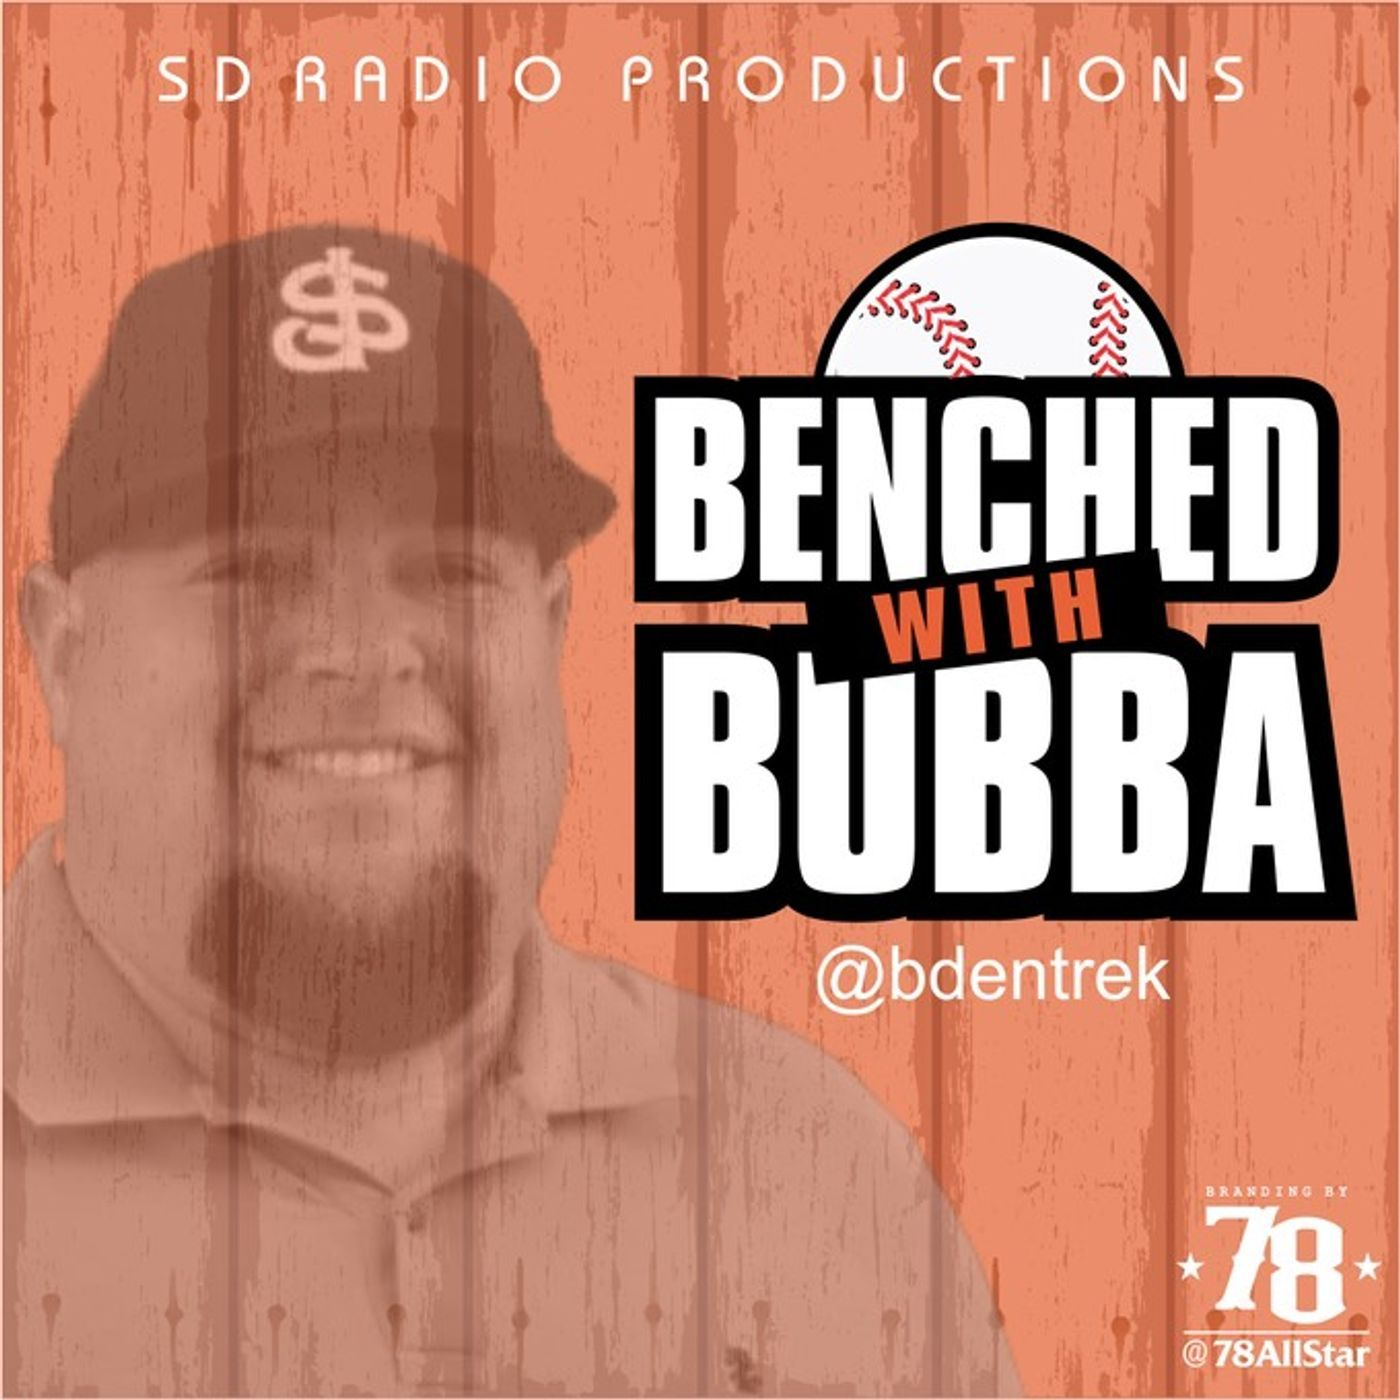 Benched with Bubba EP 288 - NFBC Veteran Dave McDonald